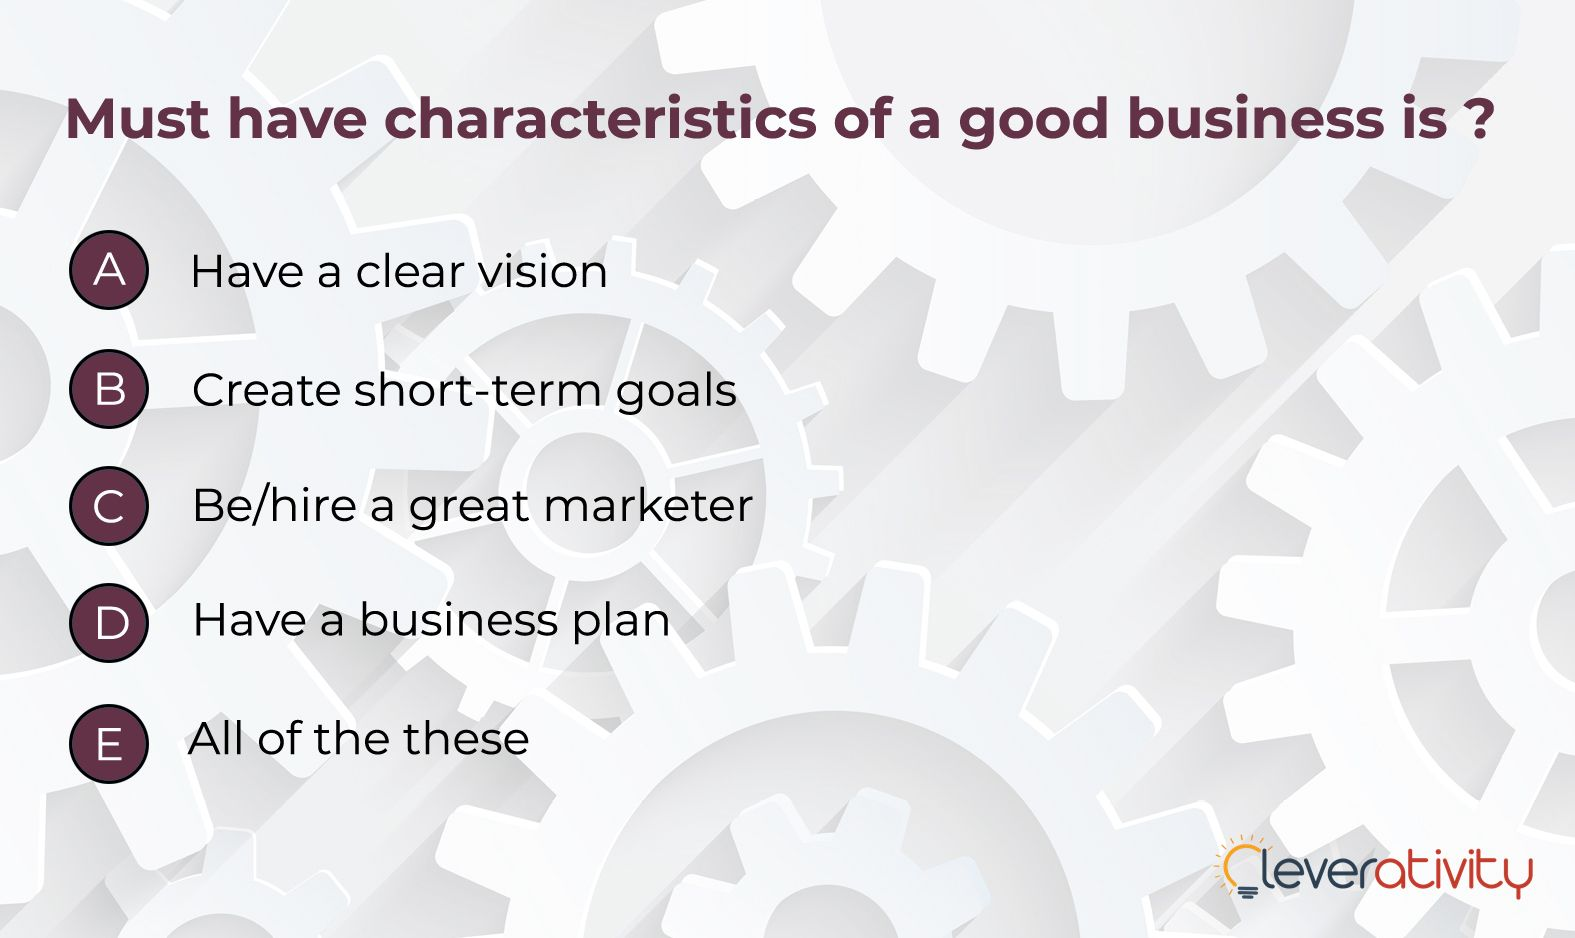 What according to you must have characteristic of good